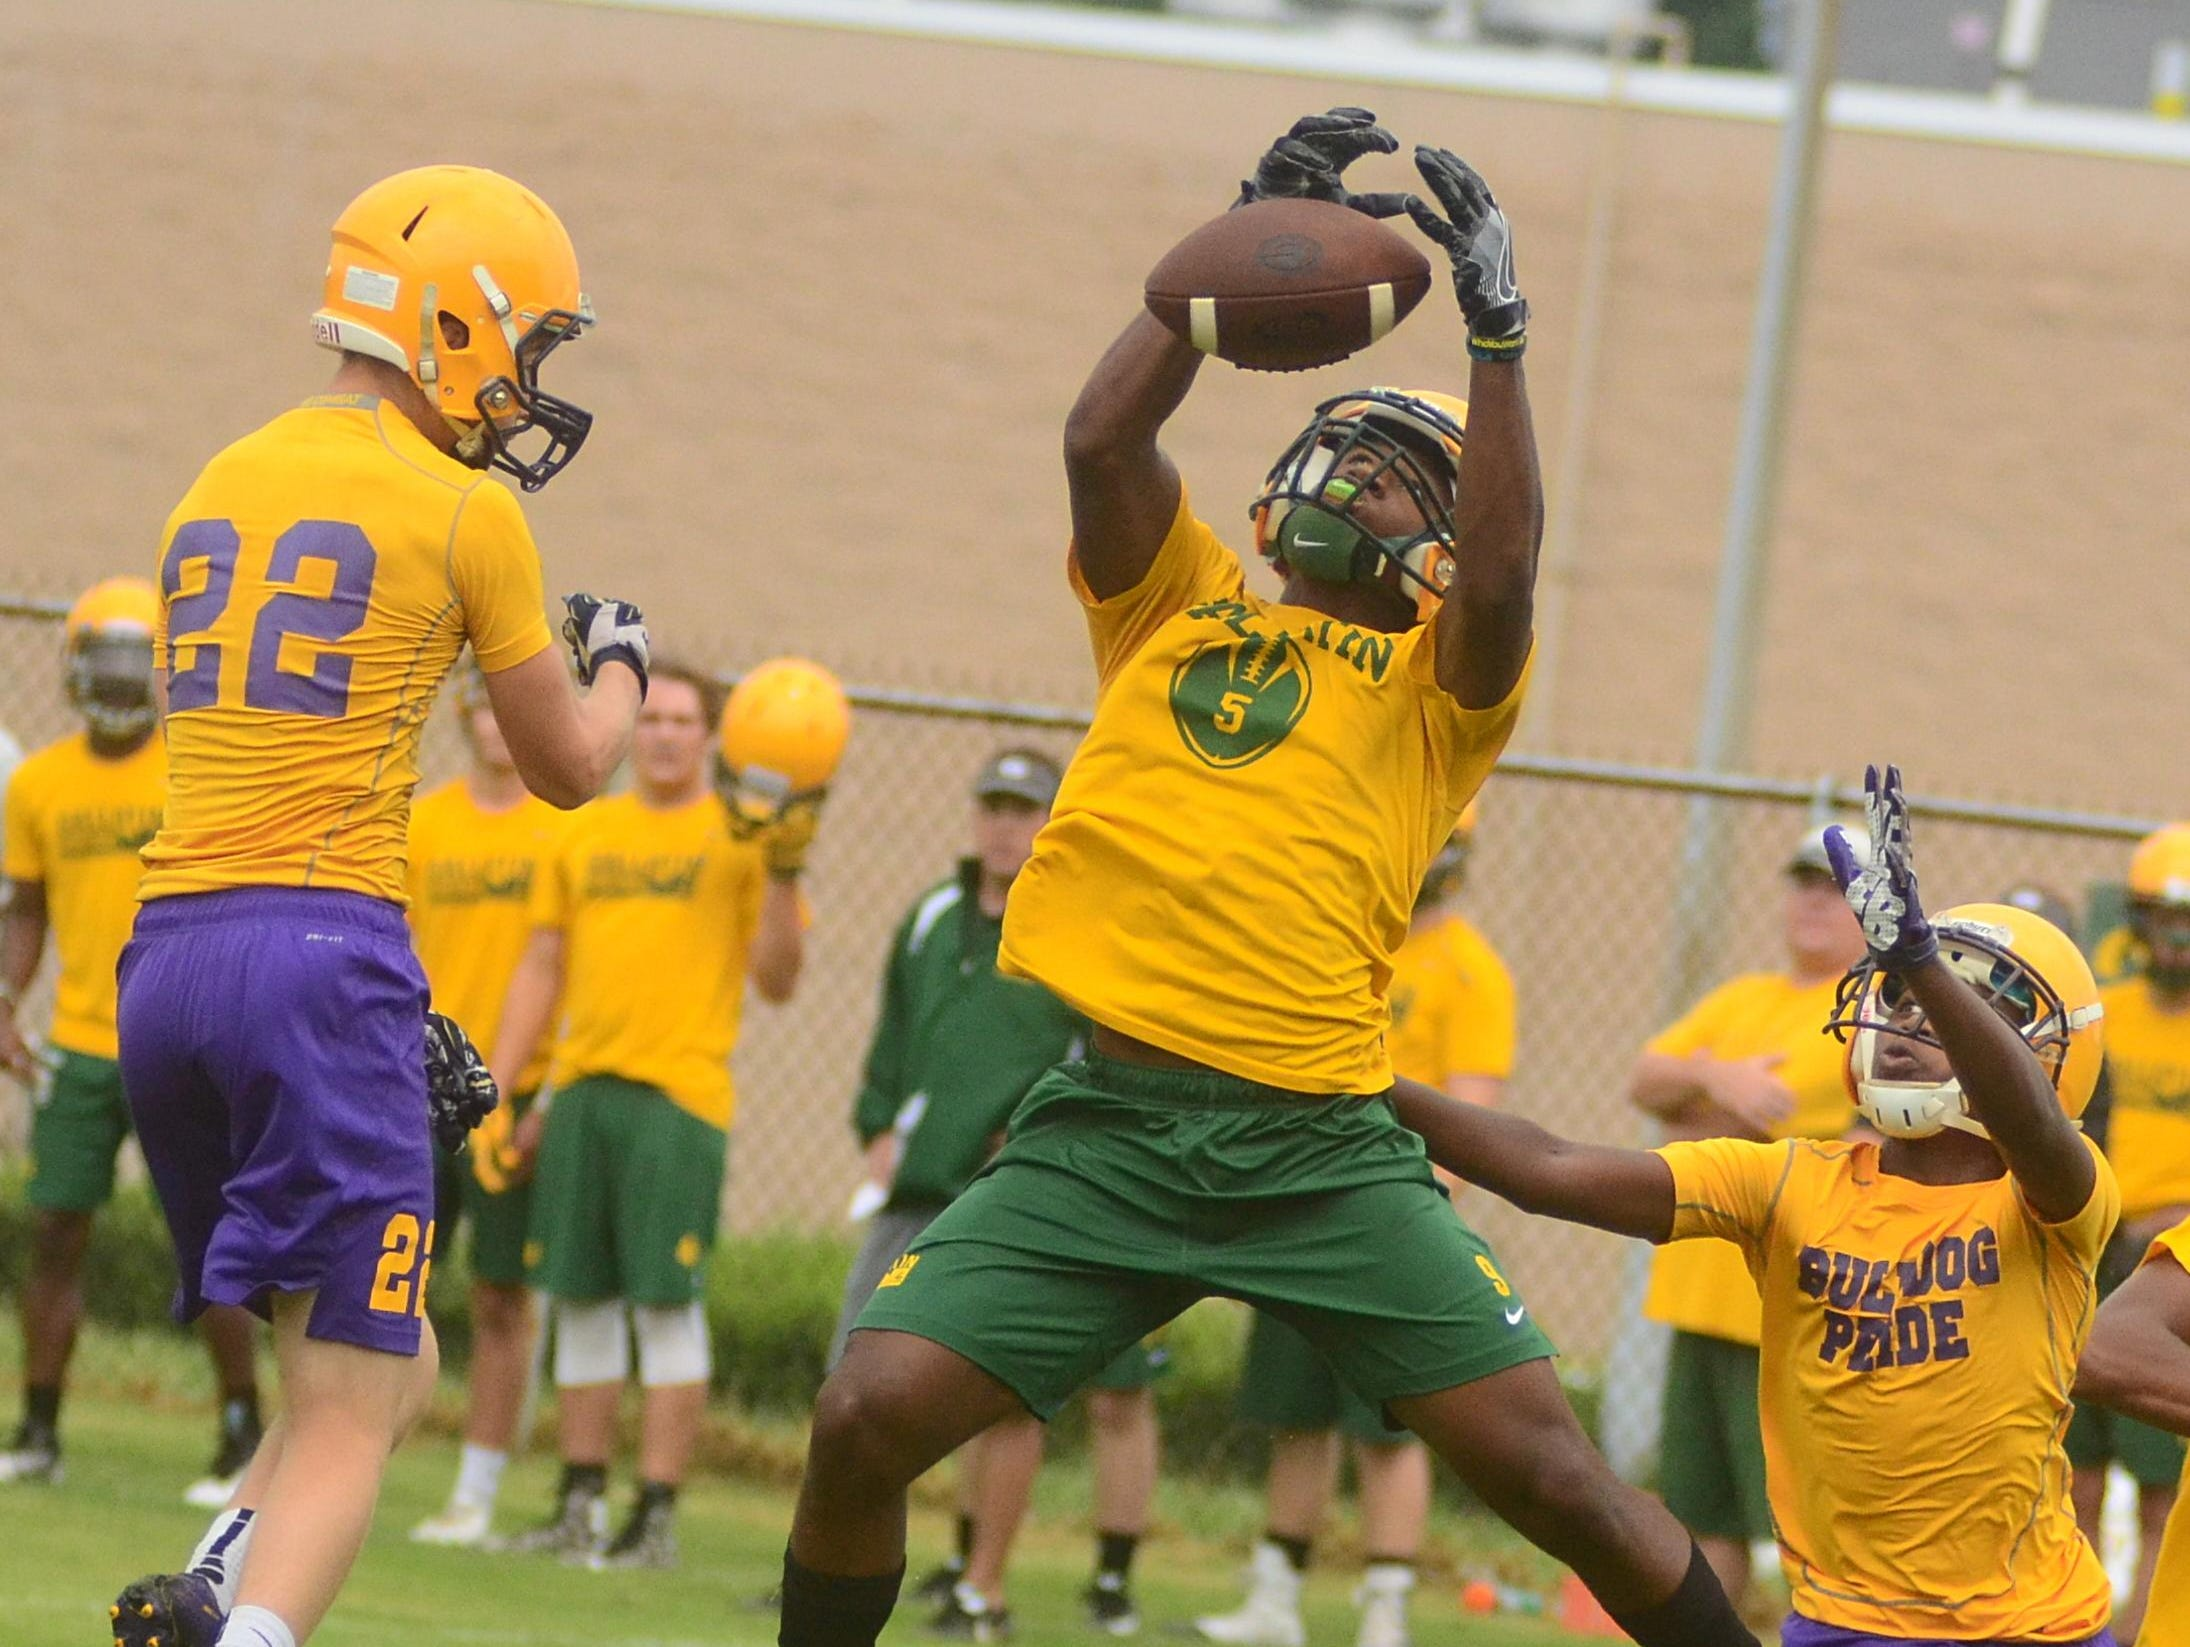 Gallatin High senior wide recevier Dezmond Chambers leaps to make a catch against Smyrna during 7-on-7 action.